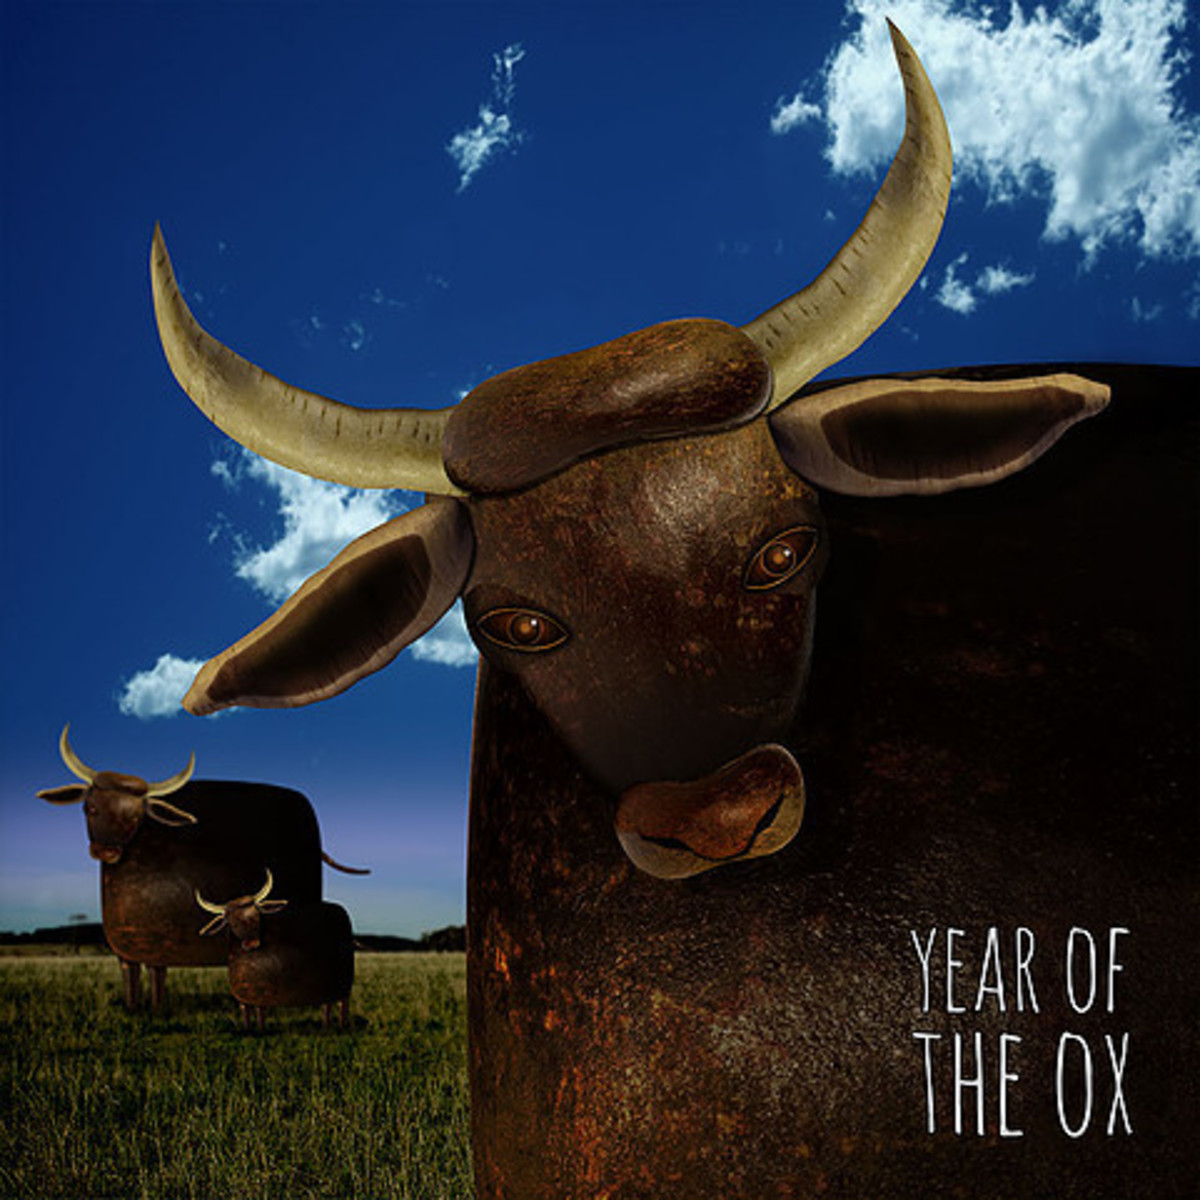 Carrie Webster - The Year of The Ox